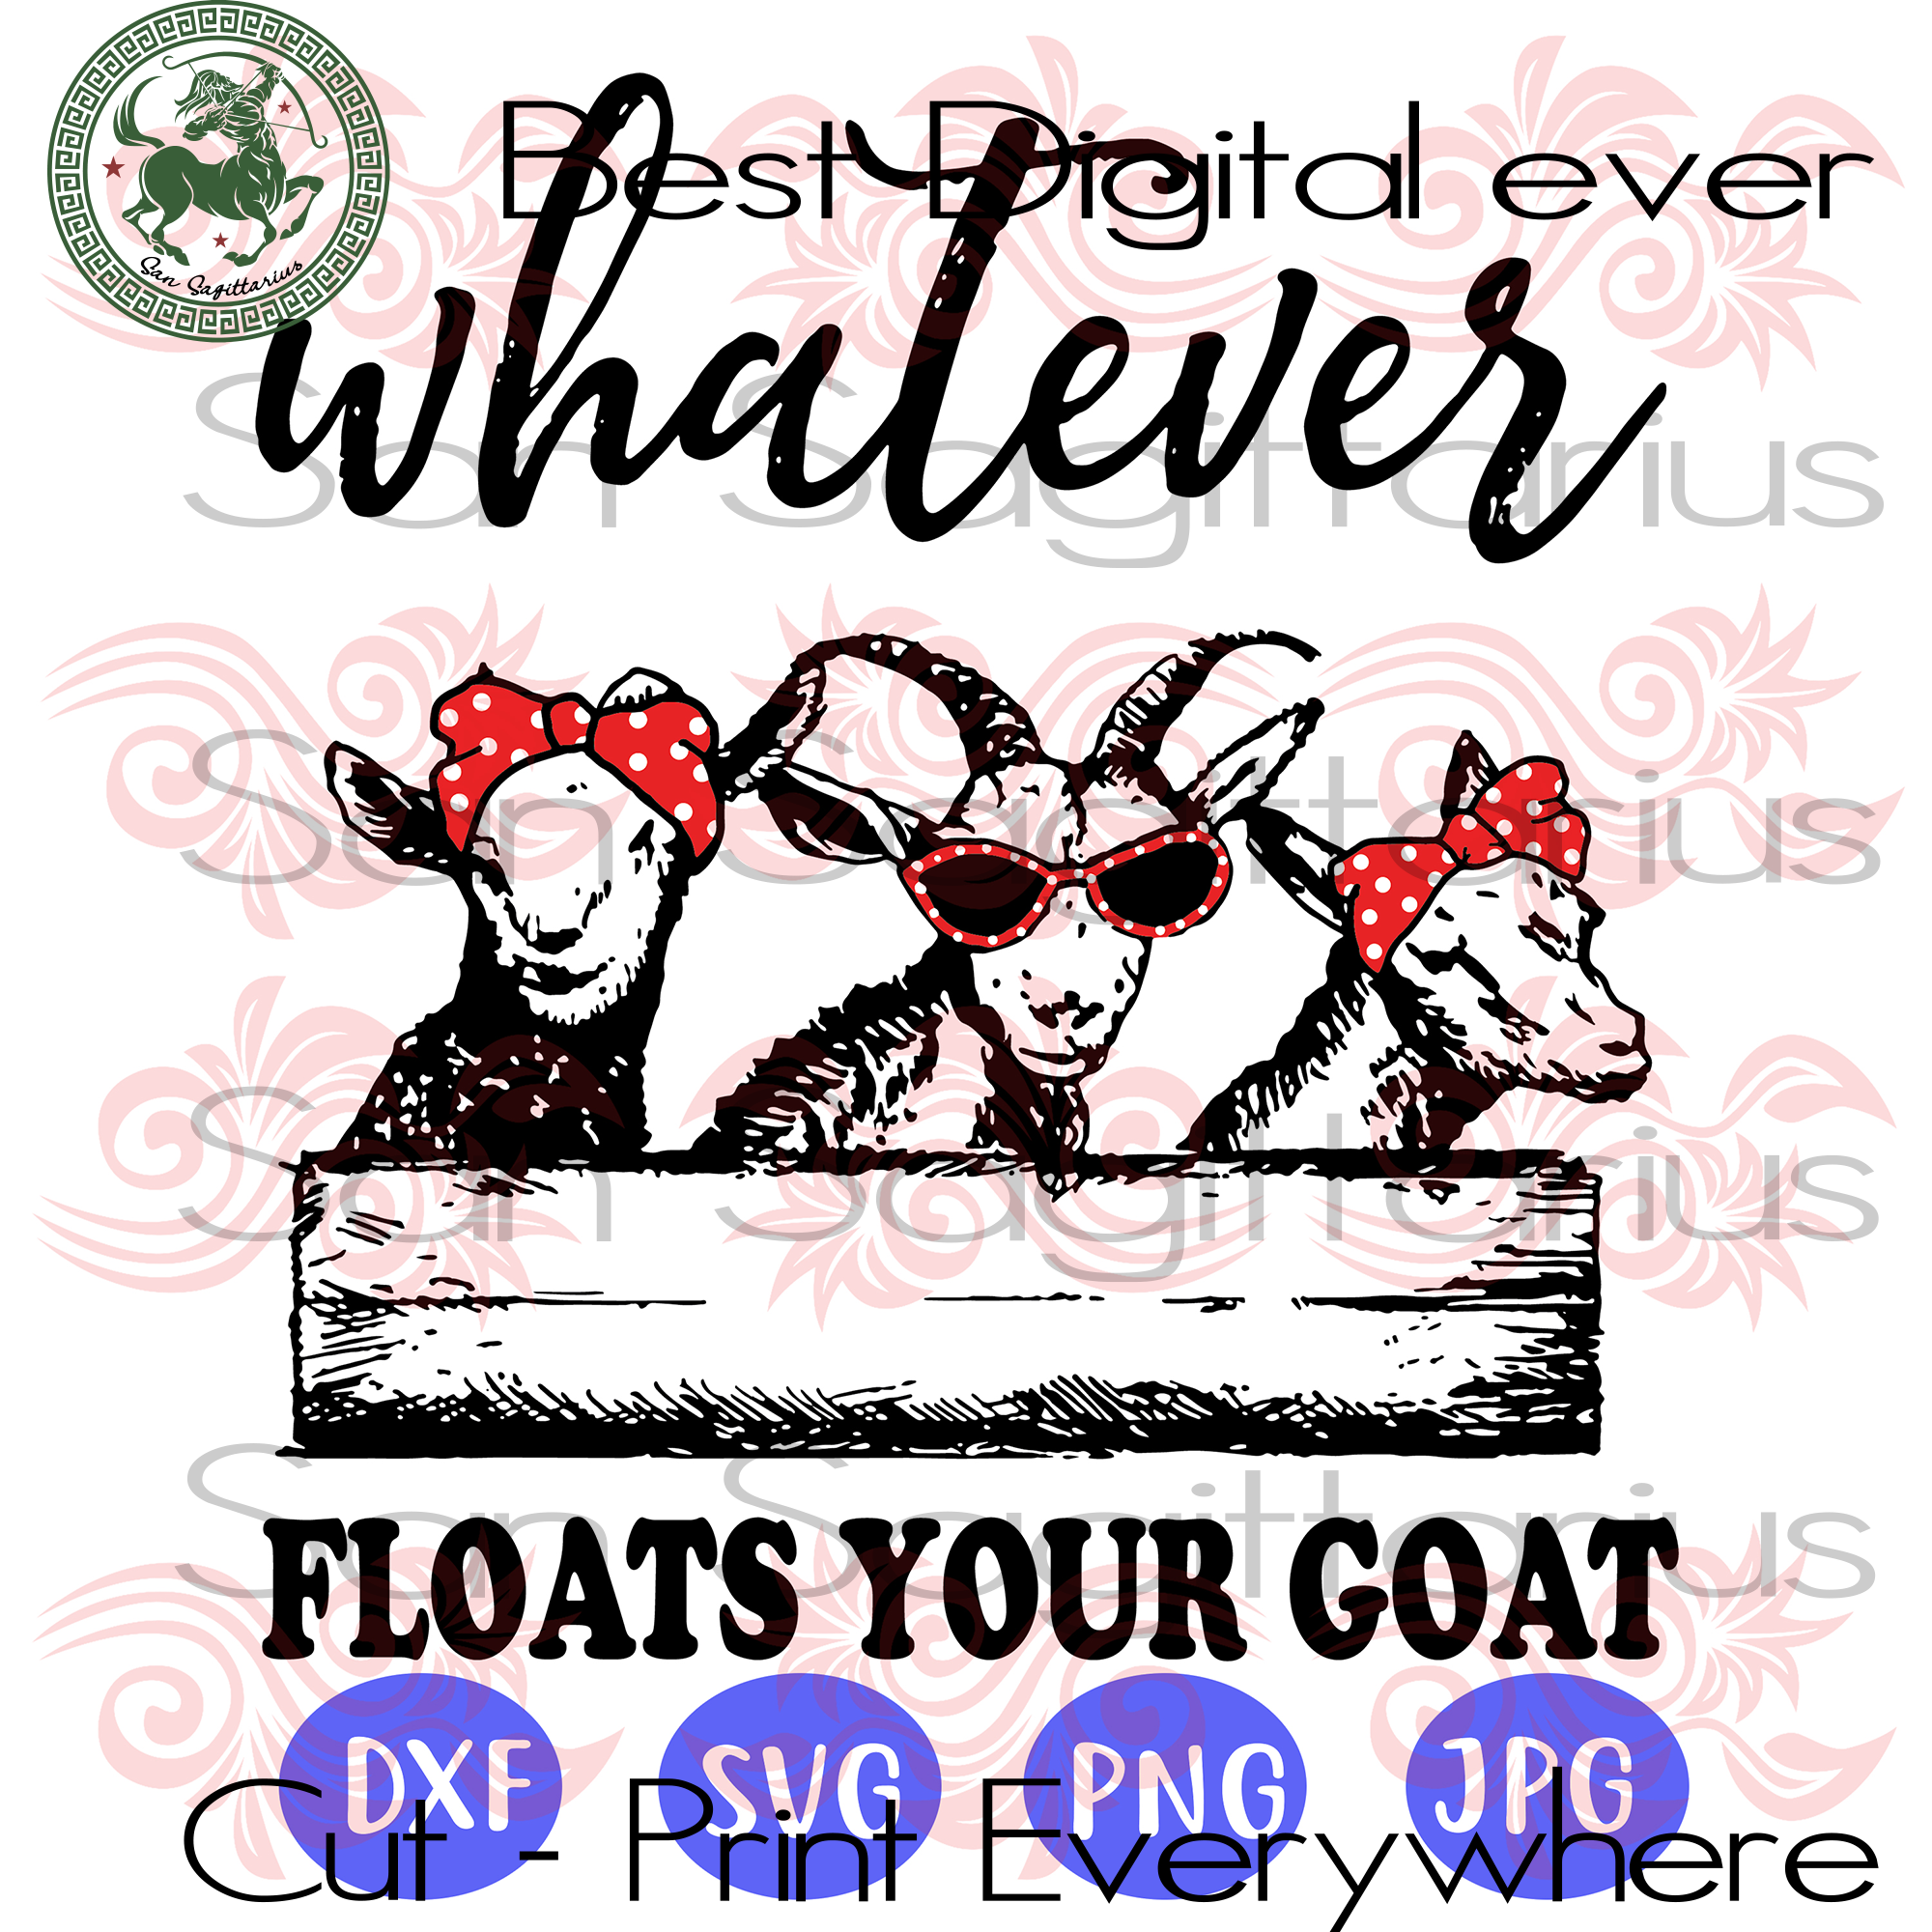 Funny Goats With Glasses Whatever Floats Your Goat, Goat lover, Goat vector clipart, Goat mom, Farming Animals Lover, Animal lover, farm animals vector, Goat SVG Files For Cricut Silhouette I